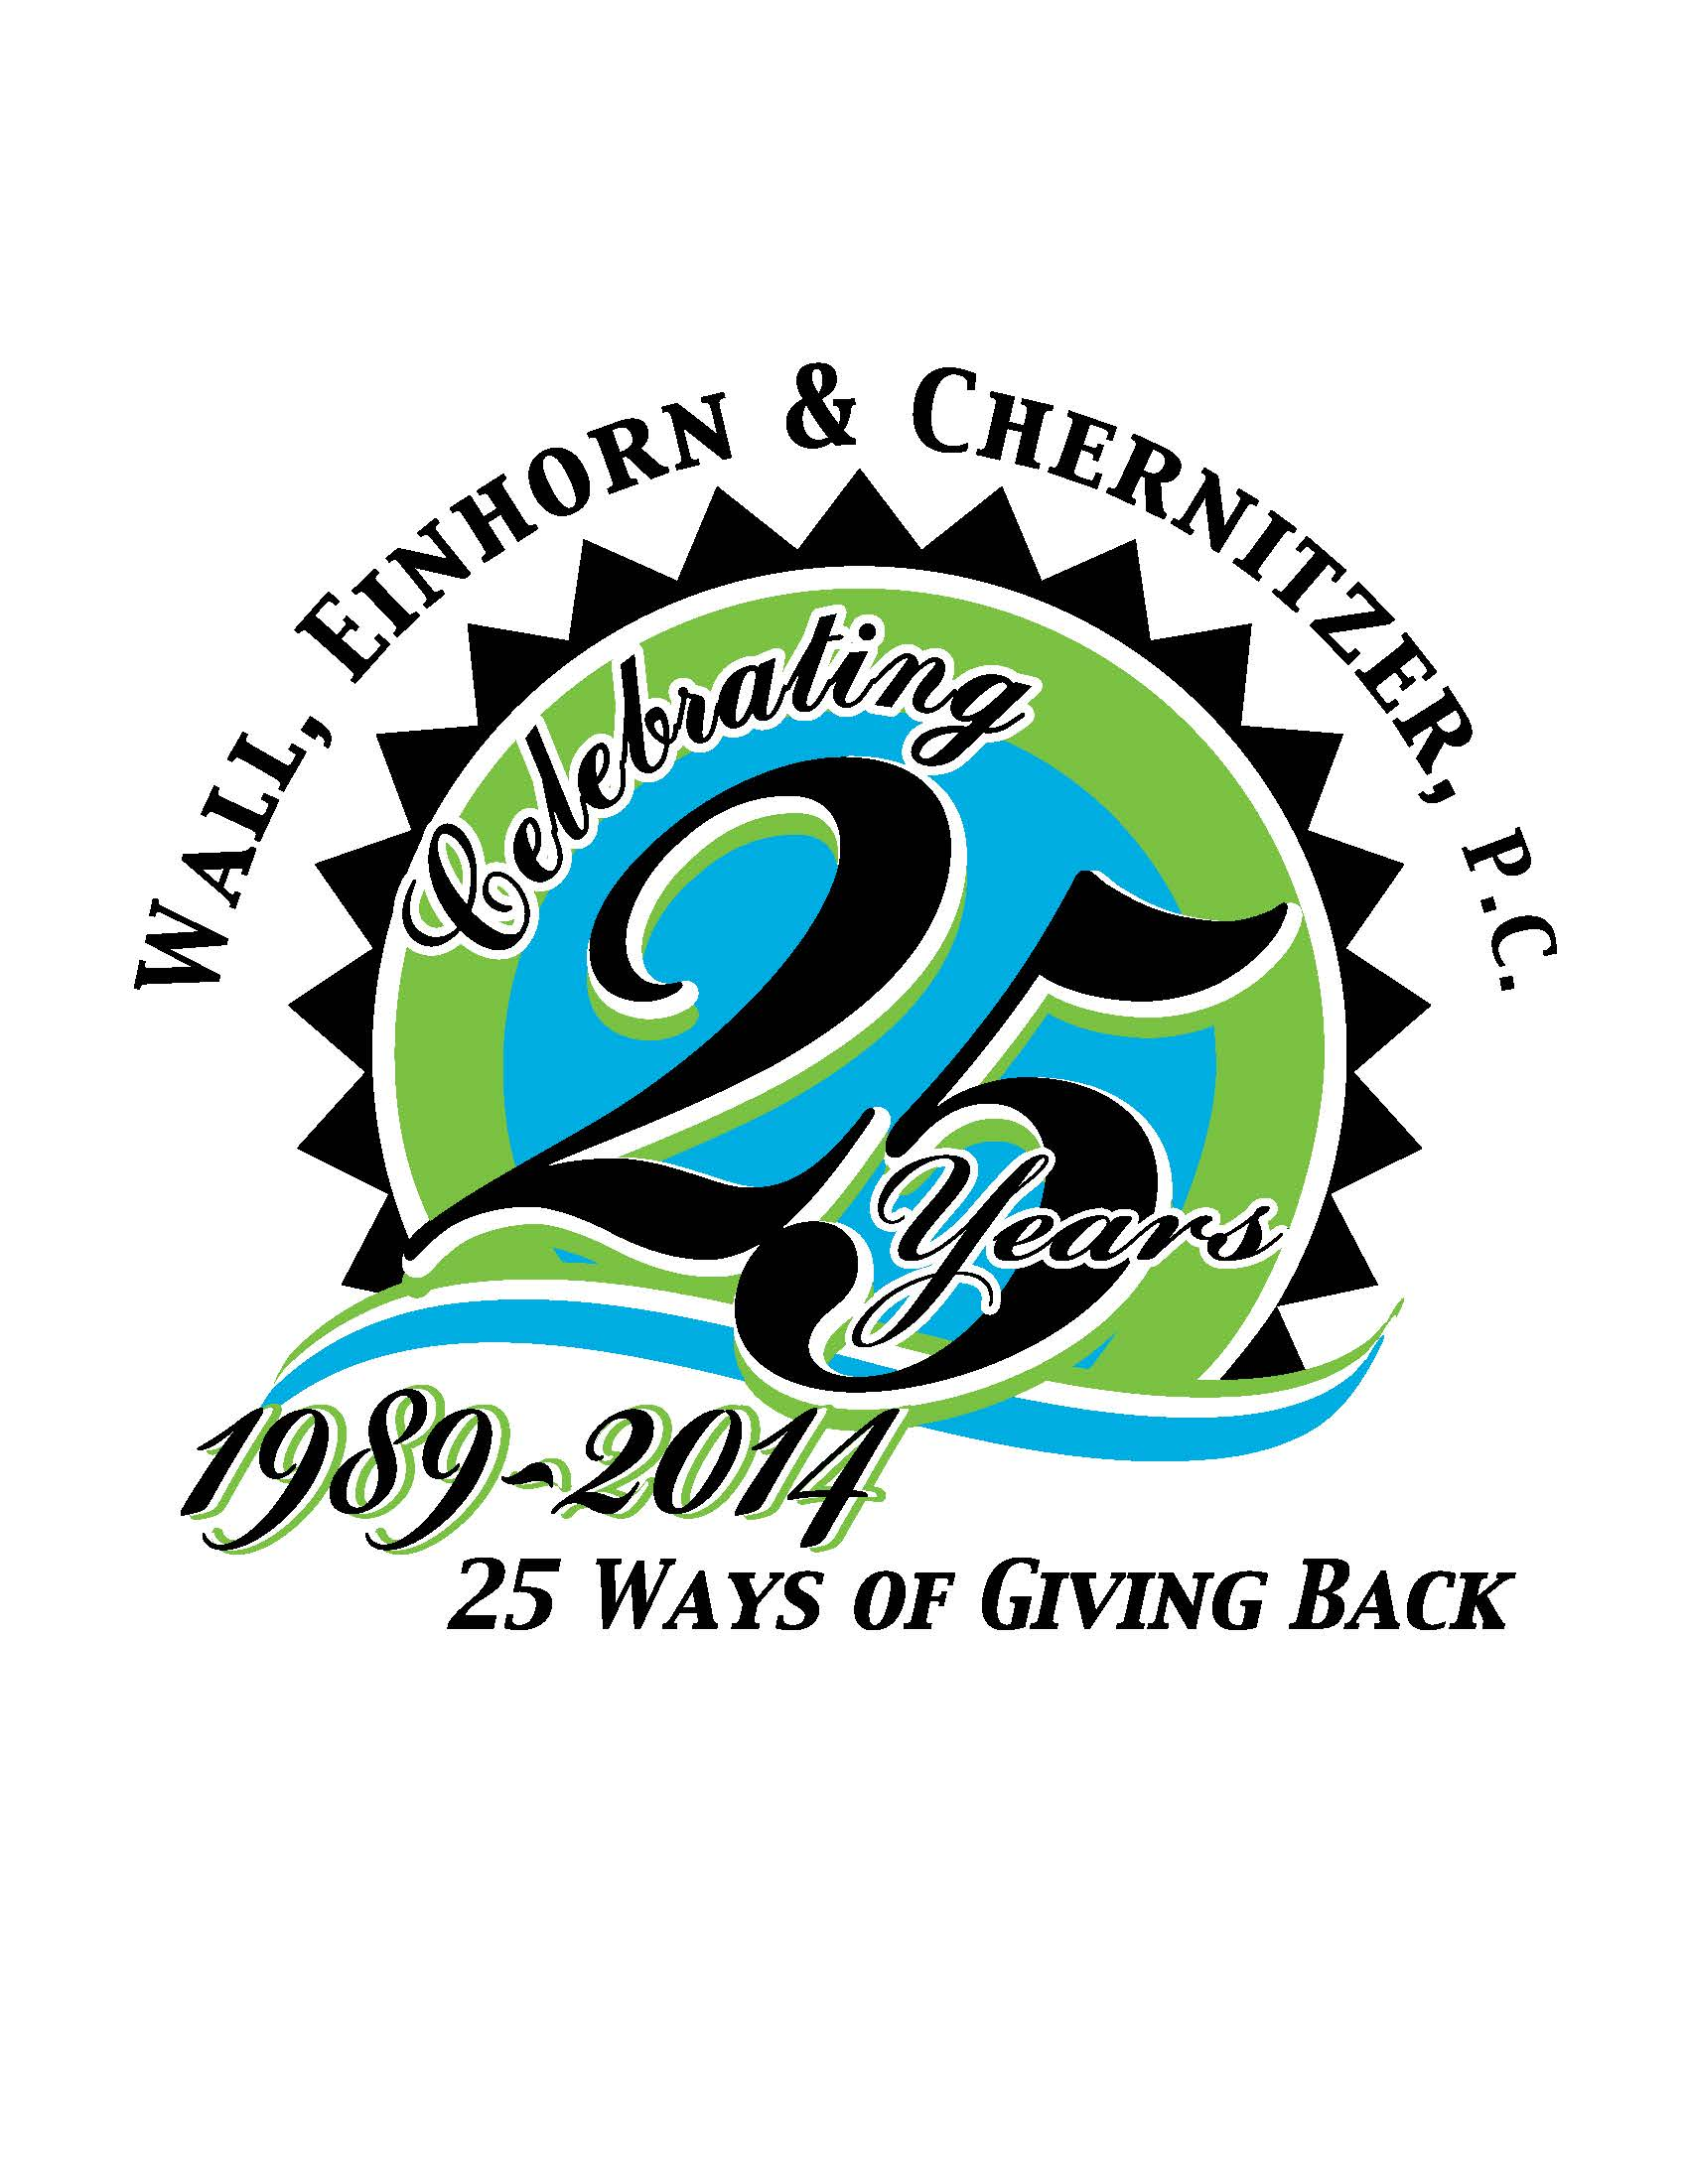 """Wall Einhorn & Chernitzer P.C. """"25 Ways of Giving Back"""" Anniversary Campaign to Benefit Local Charities"""